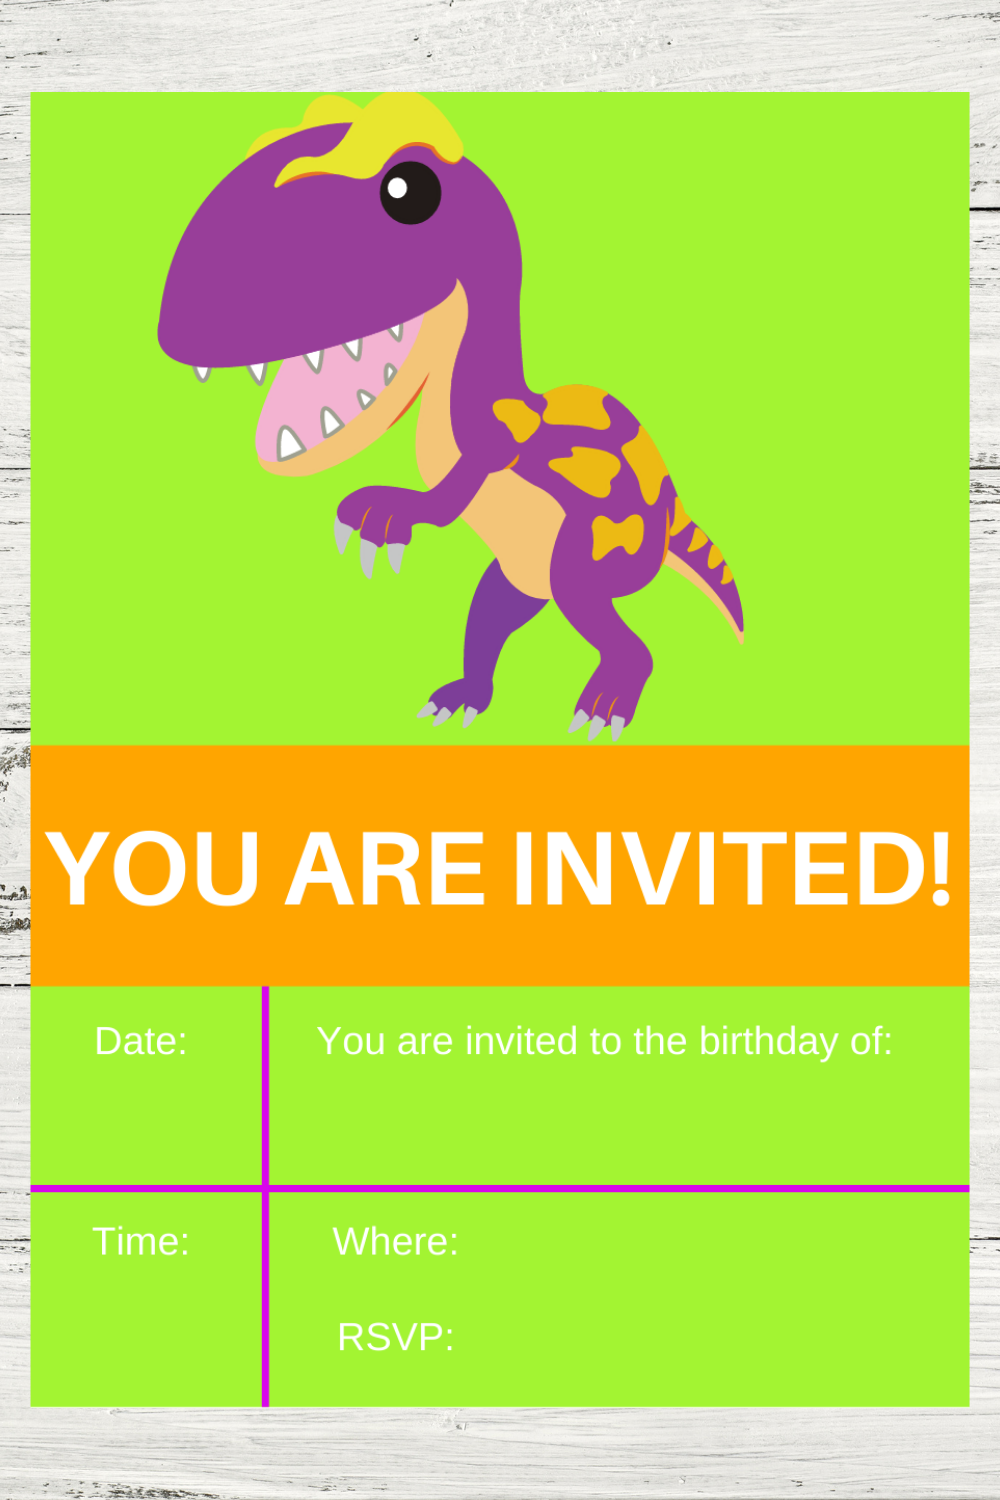 free download: printable birthday party card invite for a dino party